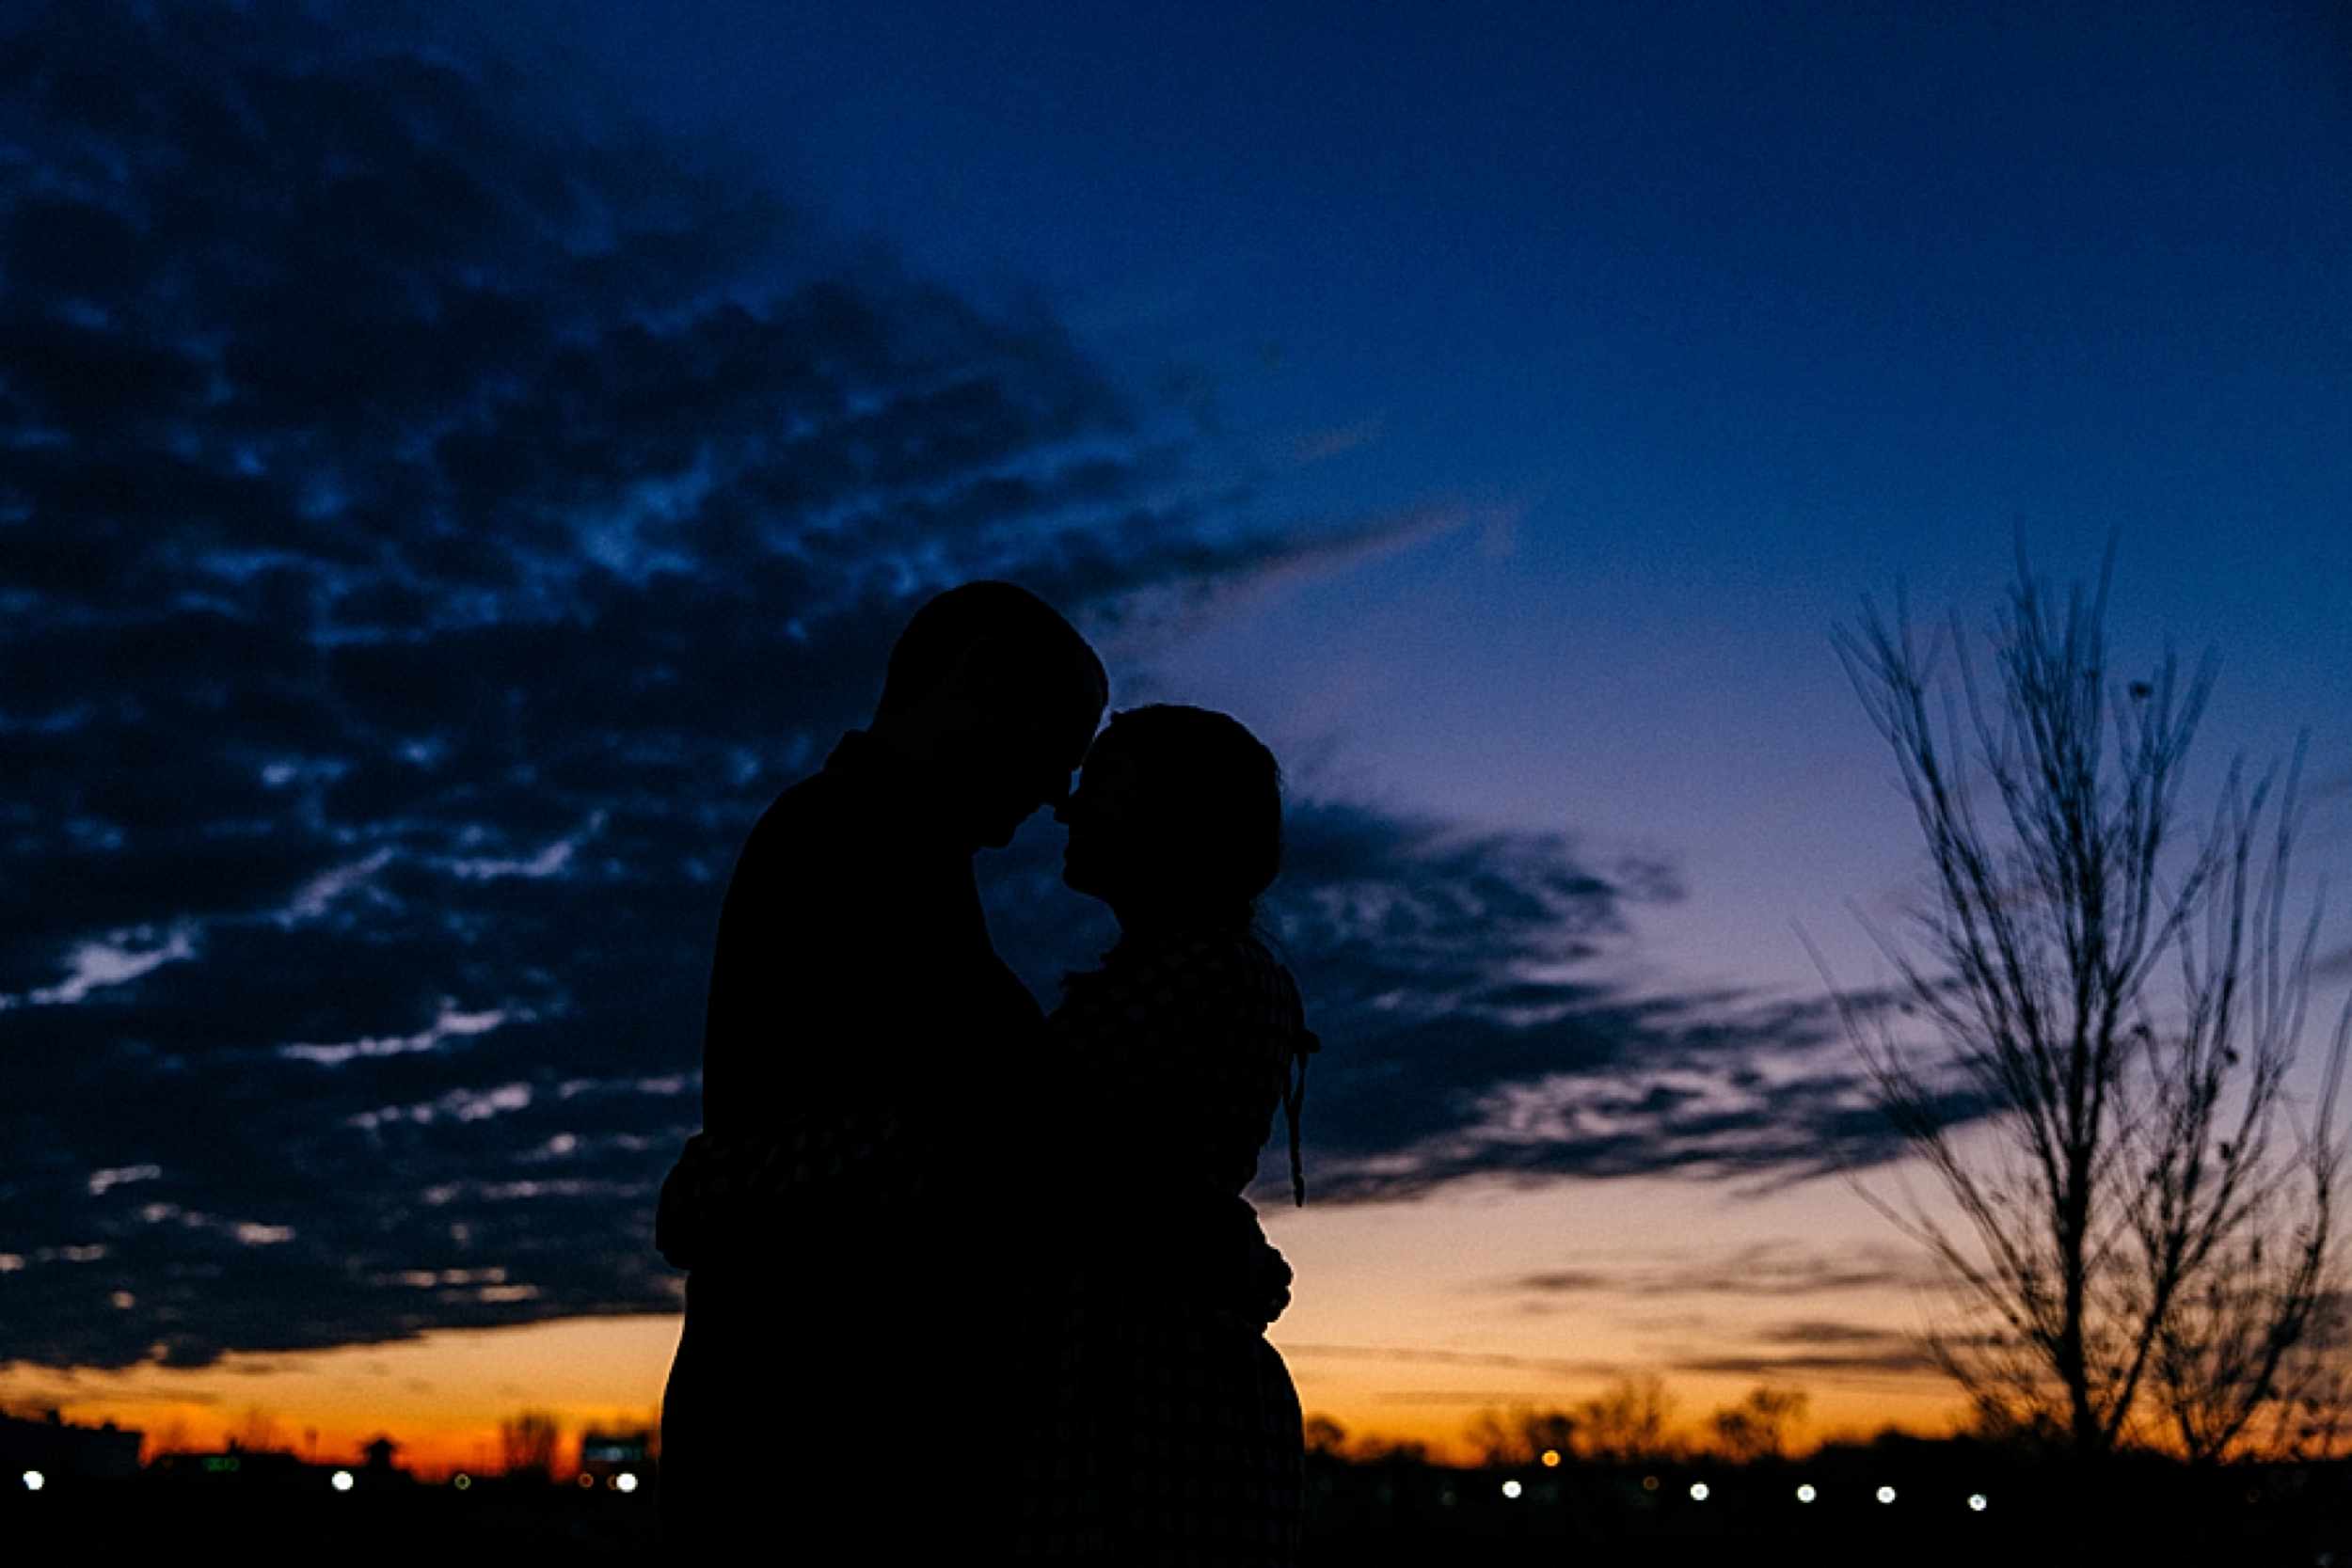 midwest-michigan-indiana-engagement-and-wedding-photographer-session-in-columbus-ohio_0014.jpg